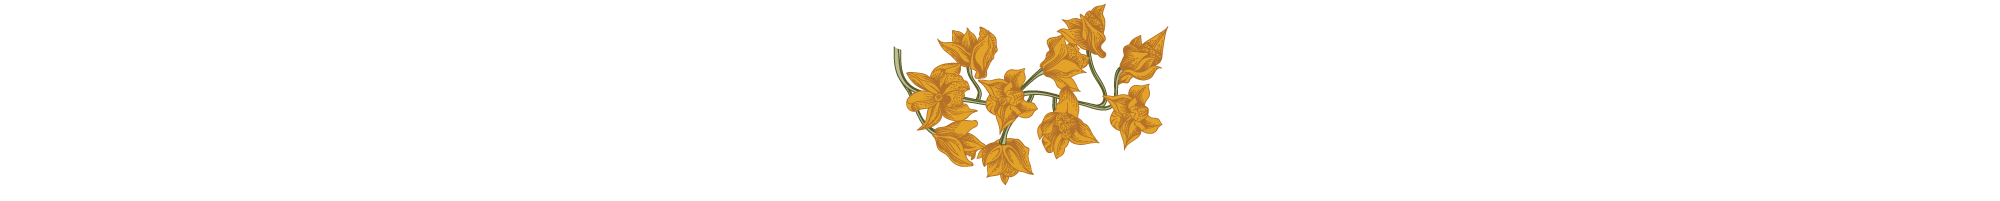 Divider-yellow-flower.png